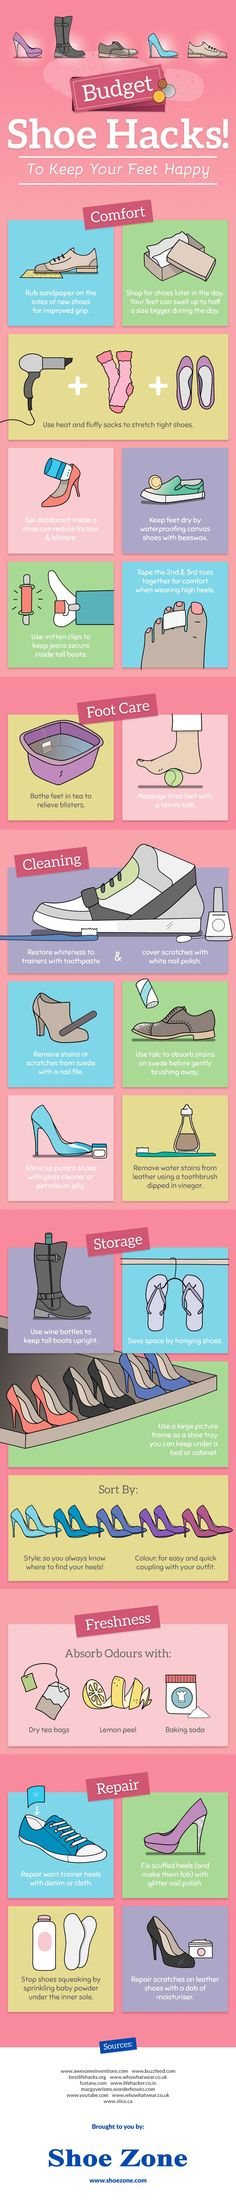 Shoe Hacks that will make your feet smile | How Do It Info